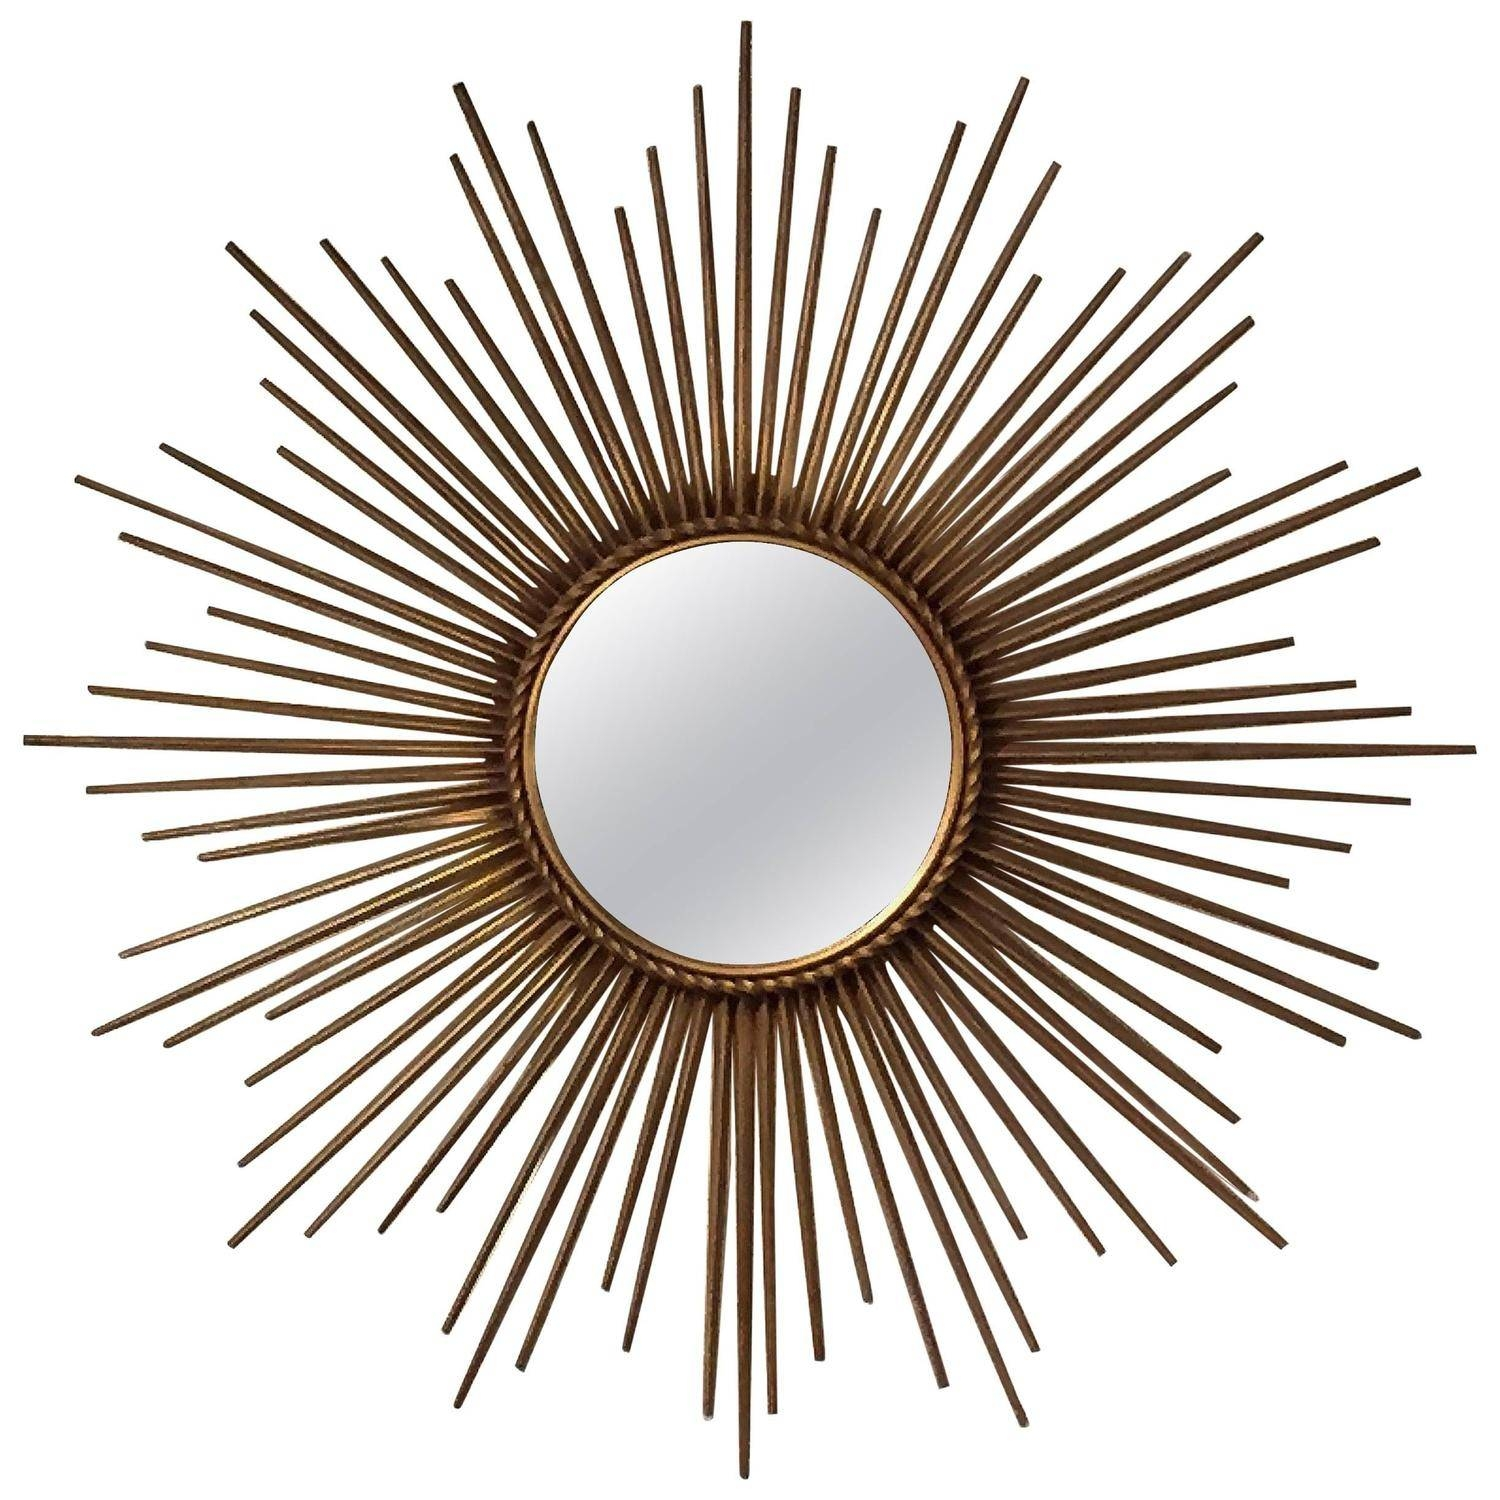 French Gilt Sunburst Or Starburst Mirrorchaty Vallauris At 1Stdibs Inside Starburst Convex Mirrors (View 5 of 15)